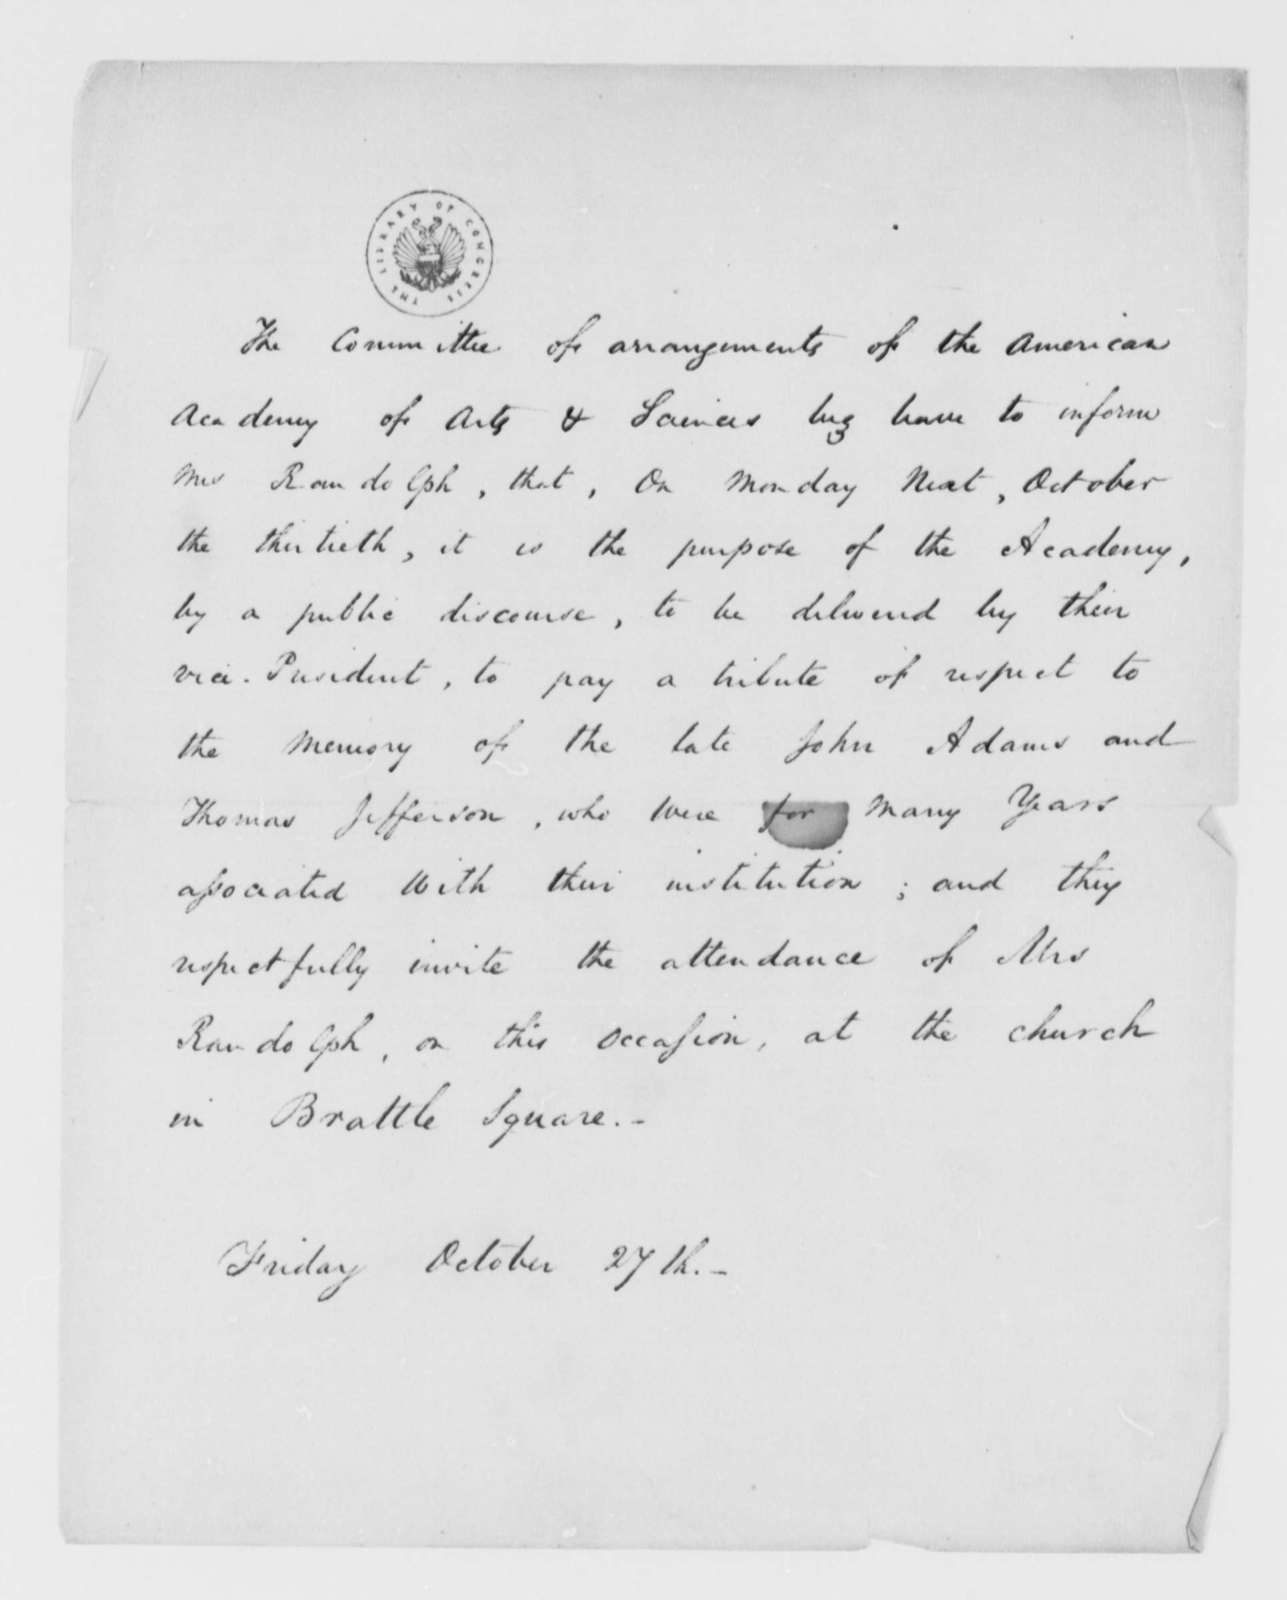 American Academy of Arts and Sciences to Martha Randolph, October 27, , Invitation to Tribute to Thomas Jefferson and John Adams